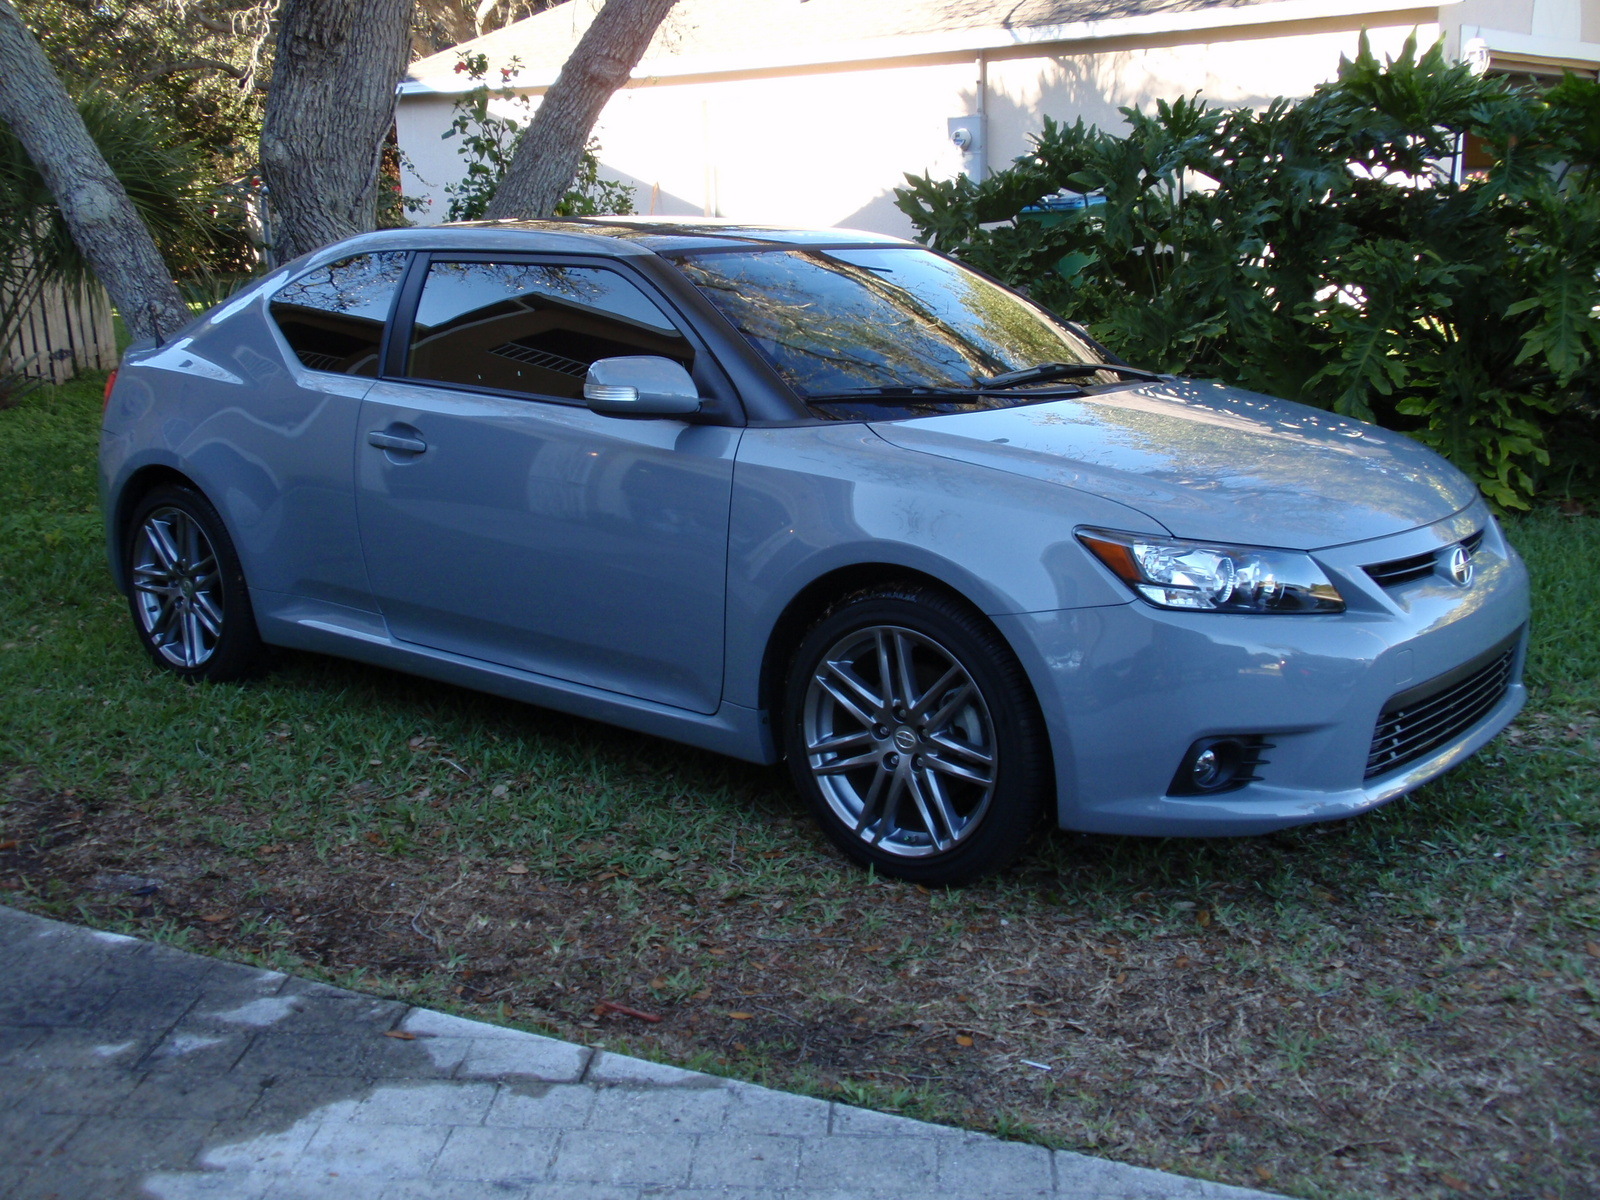 2013 scion tc base for sale in lilburn ga sexy girl and car photos. Black Bedroom Furniture Sets. Home Design Ideas